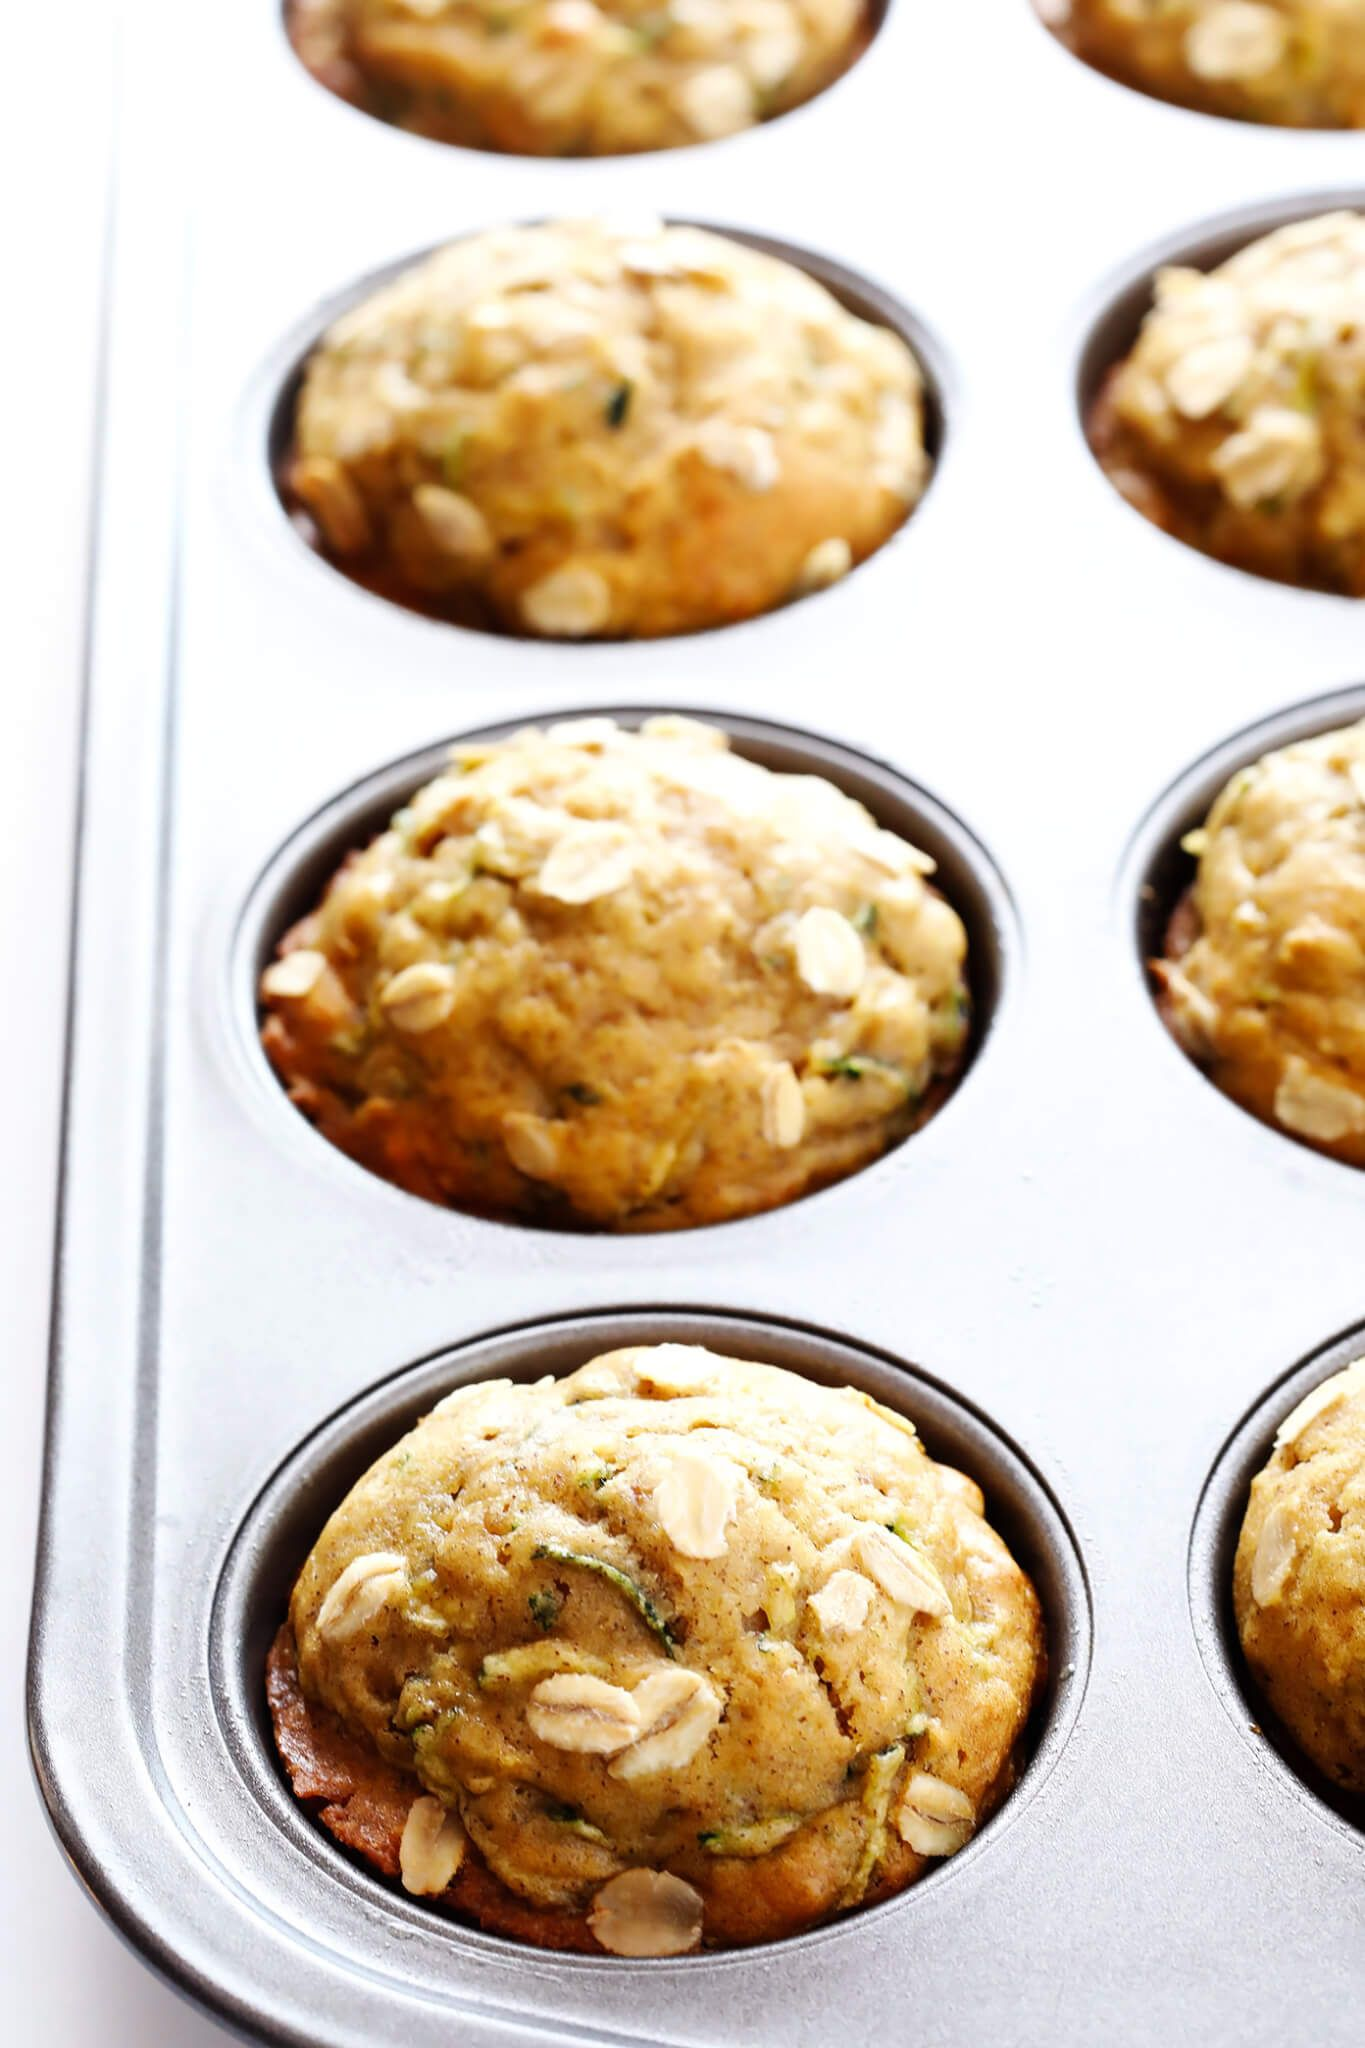 Healthy Zucchini Muffins Gimme Some Oven Recipe Zucchini Muffins Recipes Zucchini Muffins Healthy